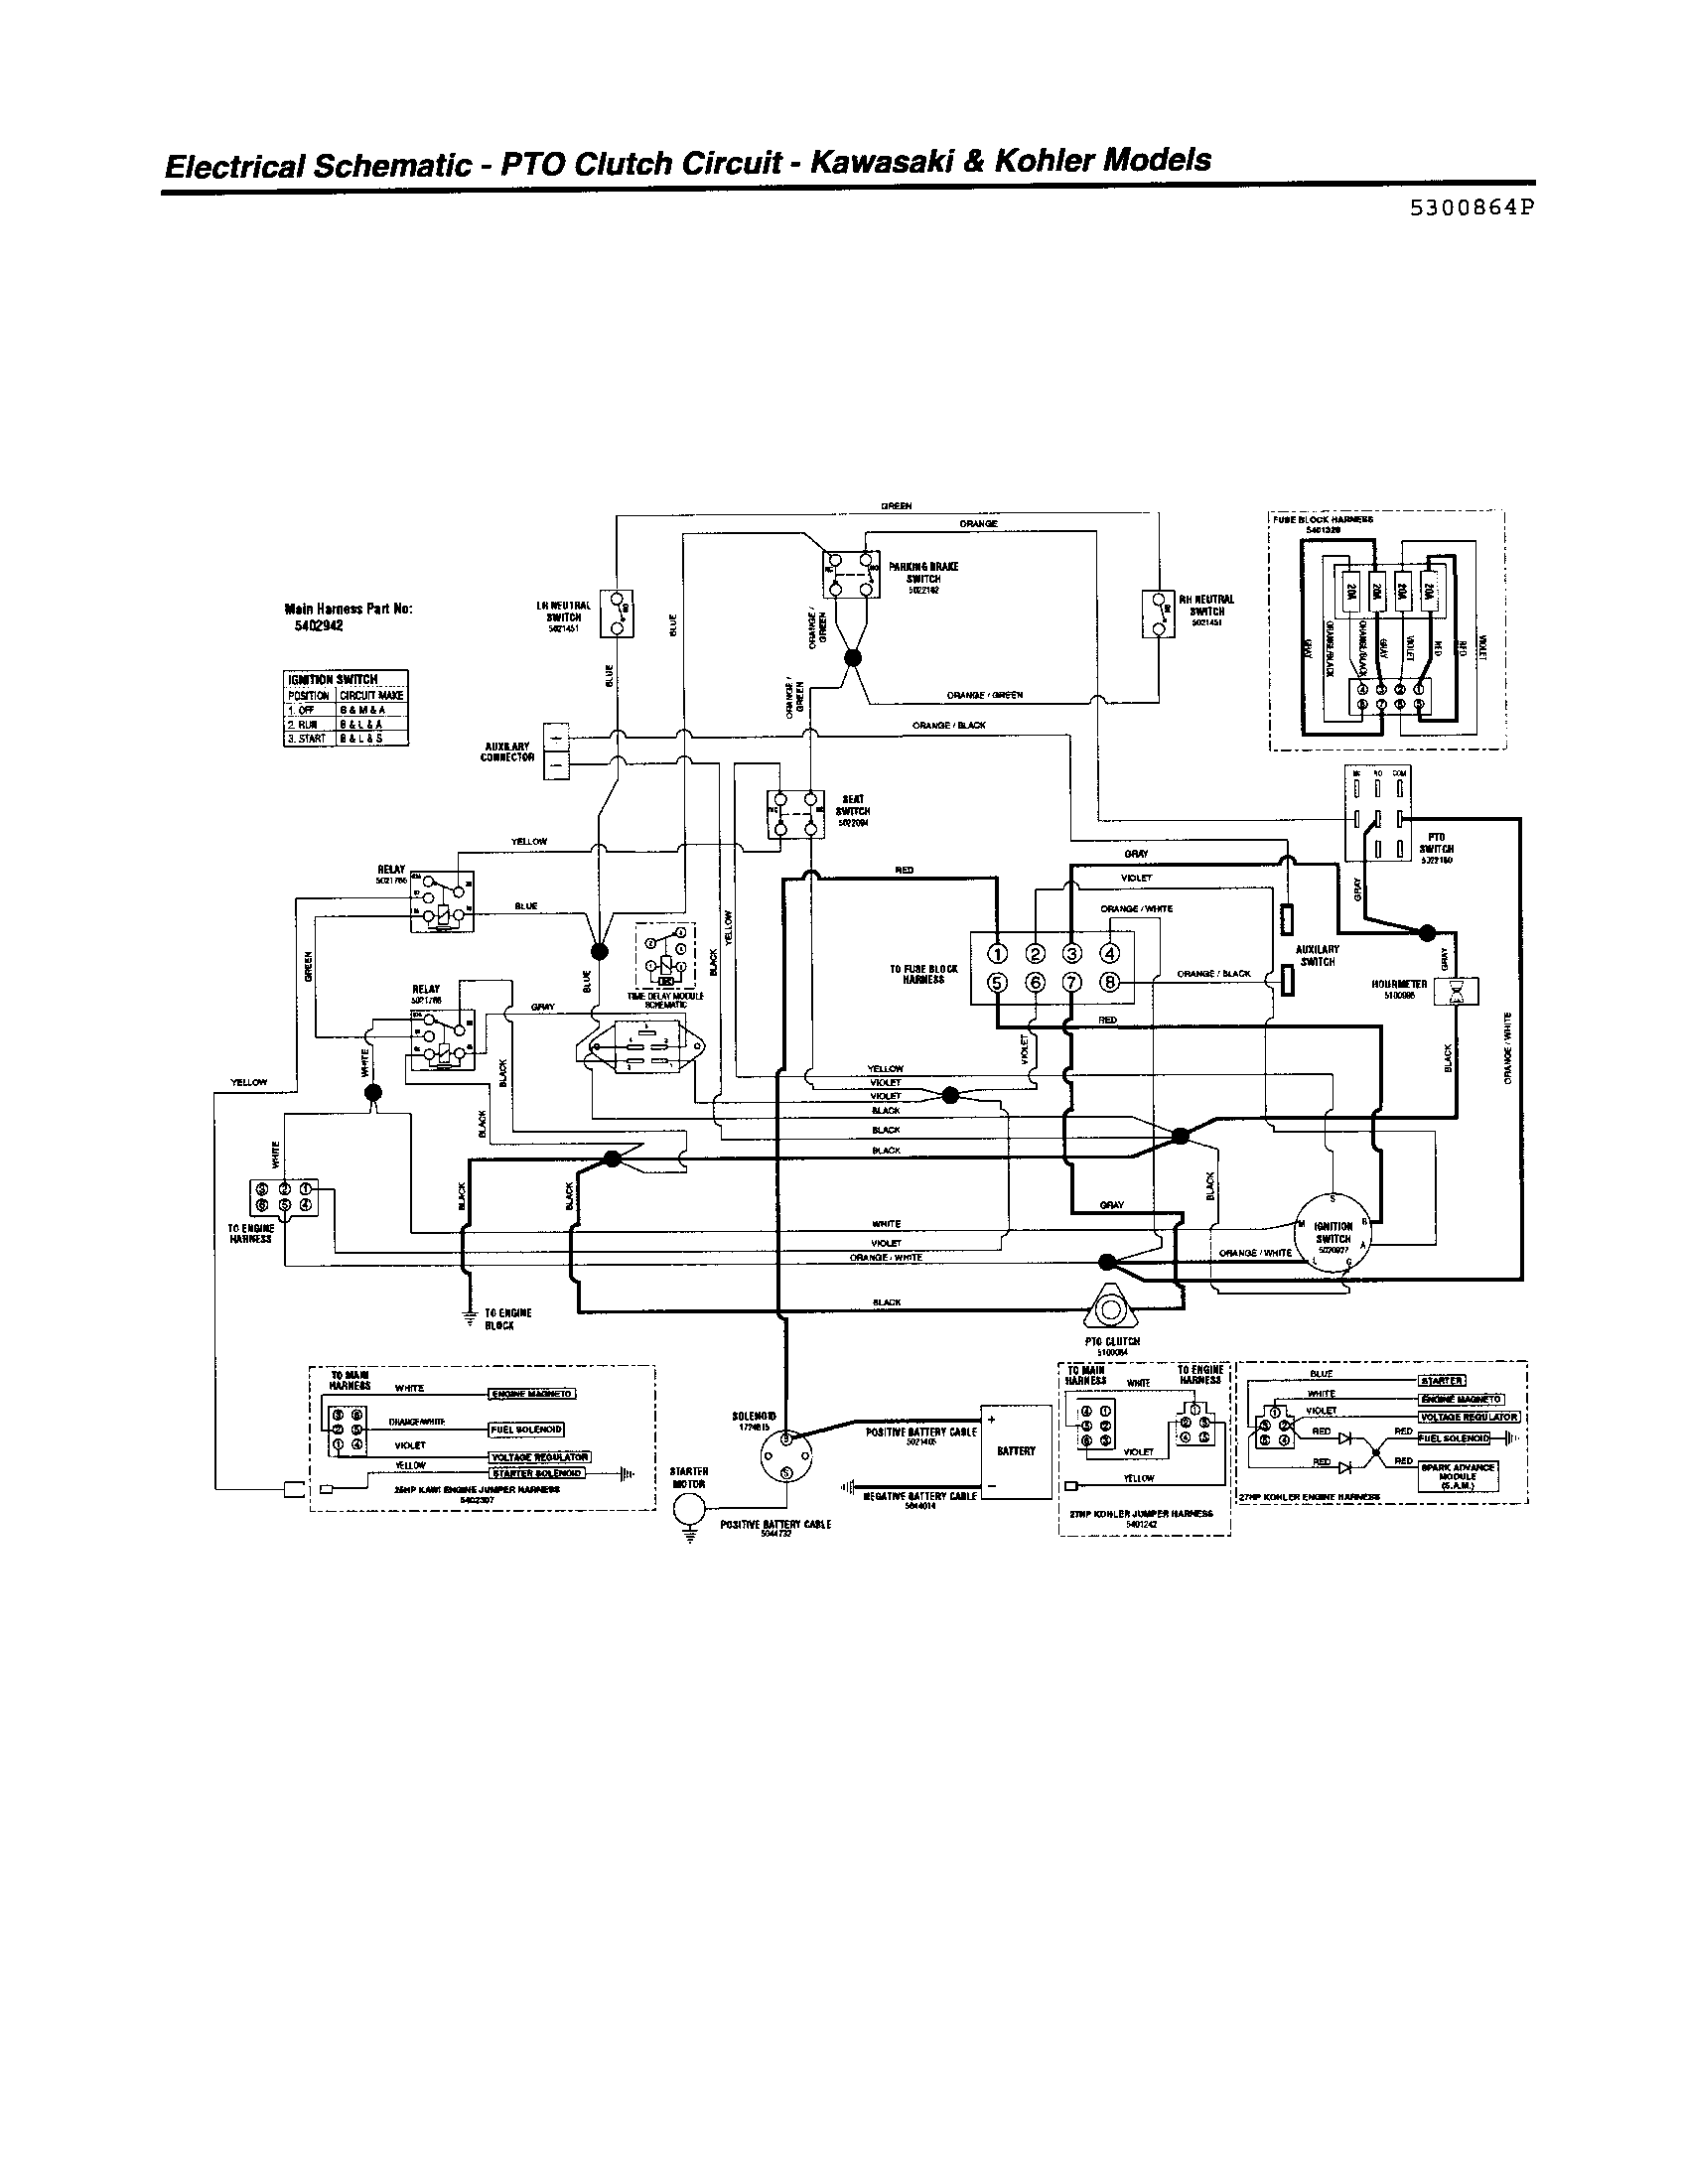 edd203c96939fe65be99faf05b27f9f2 country clipper jazee mowers wiring diagrams country clipper repeller car alarm wiring diagram at alyssarenee.co